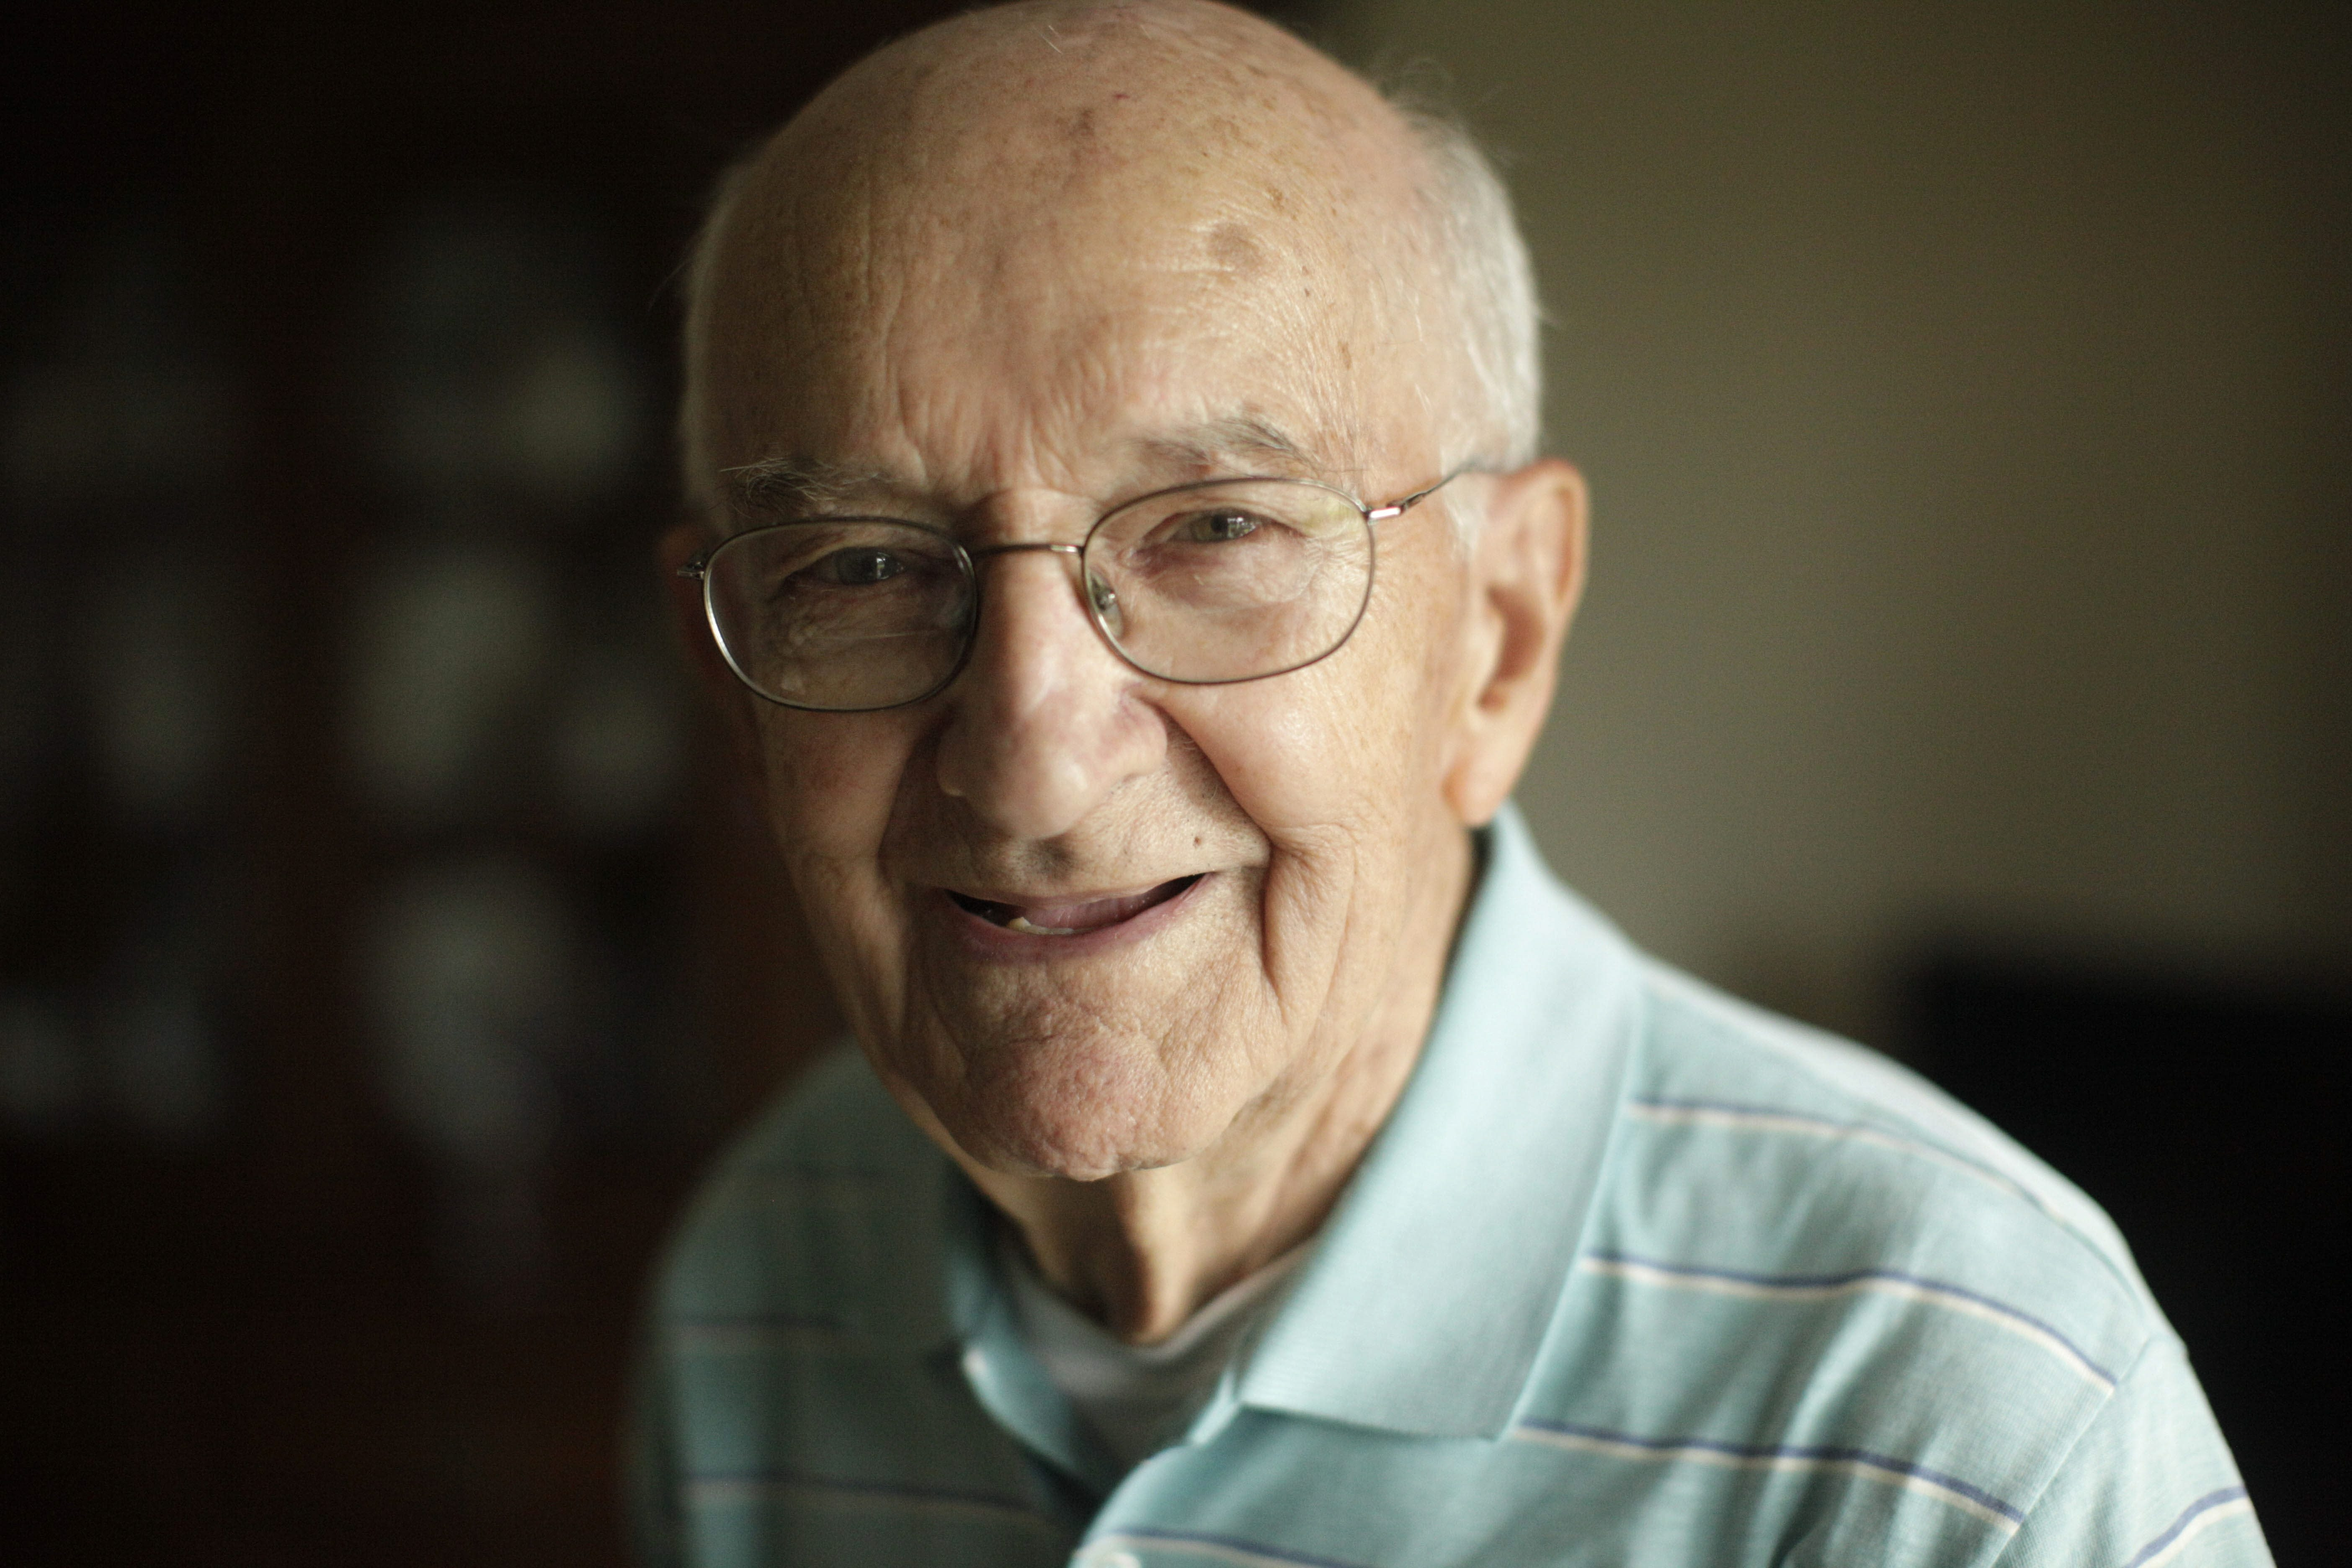 Arthur Daigler landed at Normandy on June 7 and later almost got hit in the head by shrapnel.